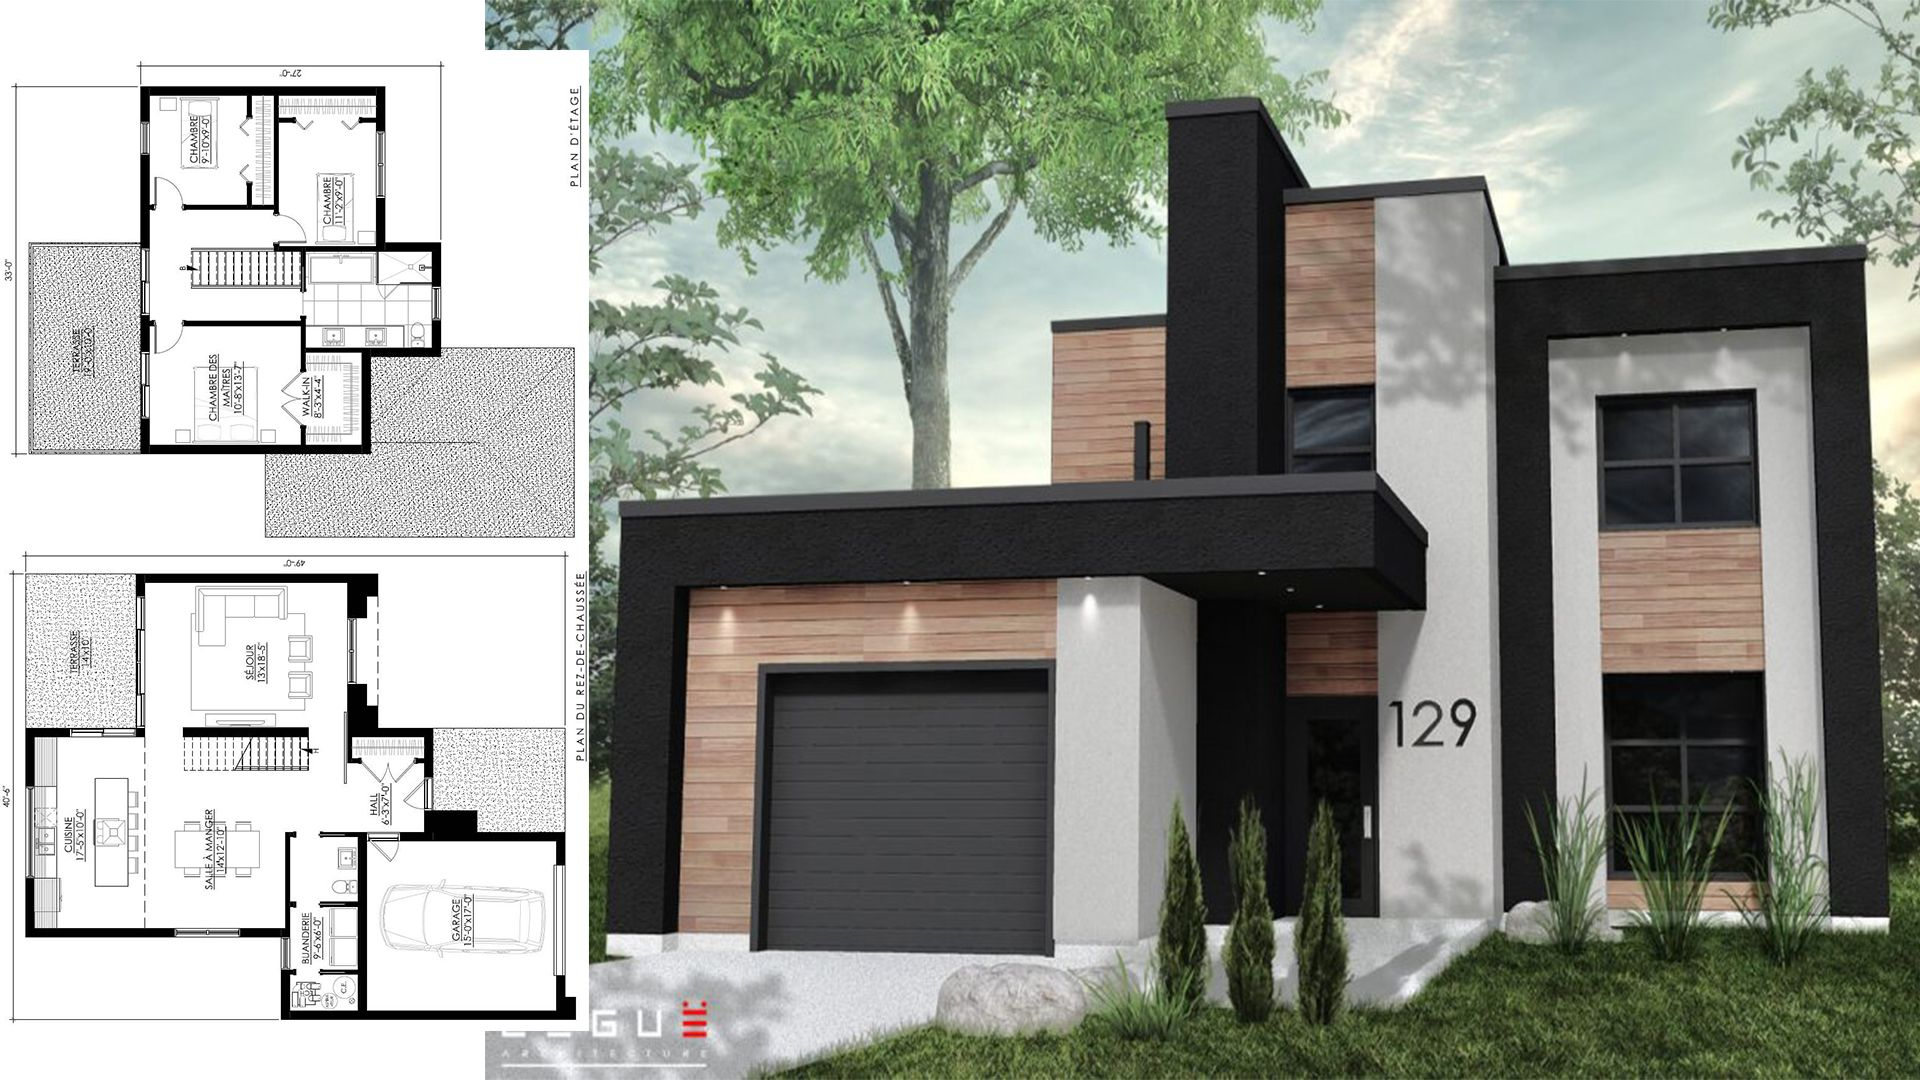 modern house design 40x49 with 3 bedrooms home design with layout rh pinterest com